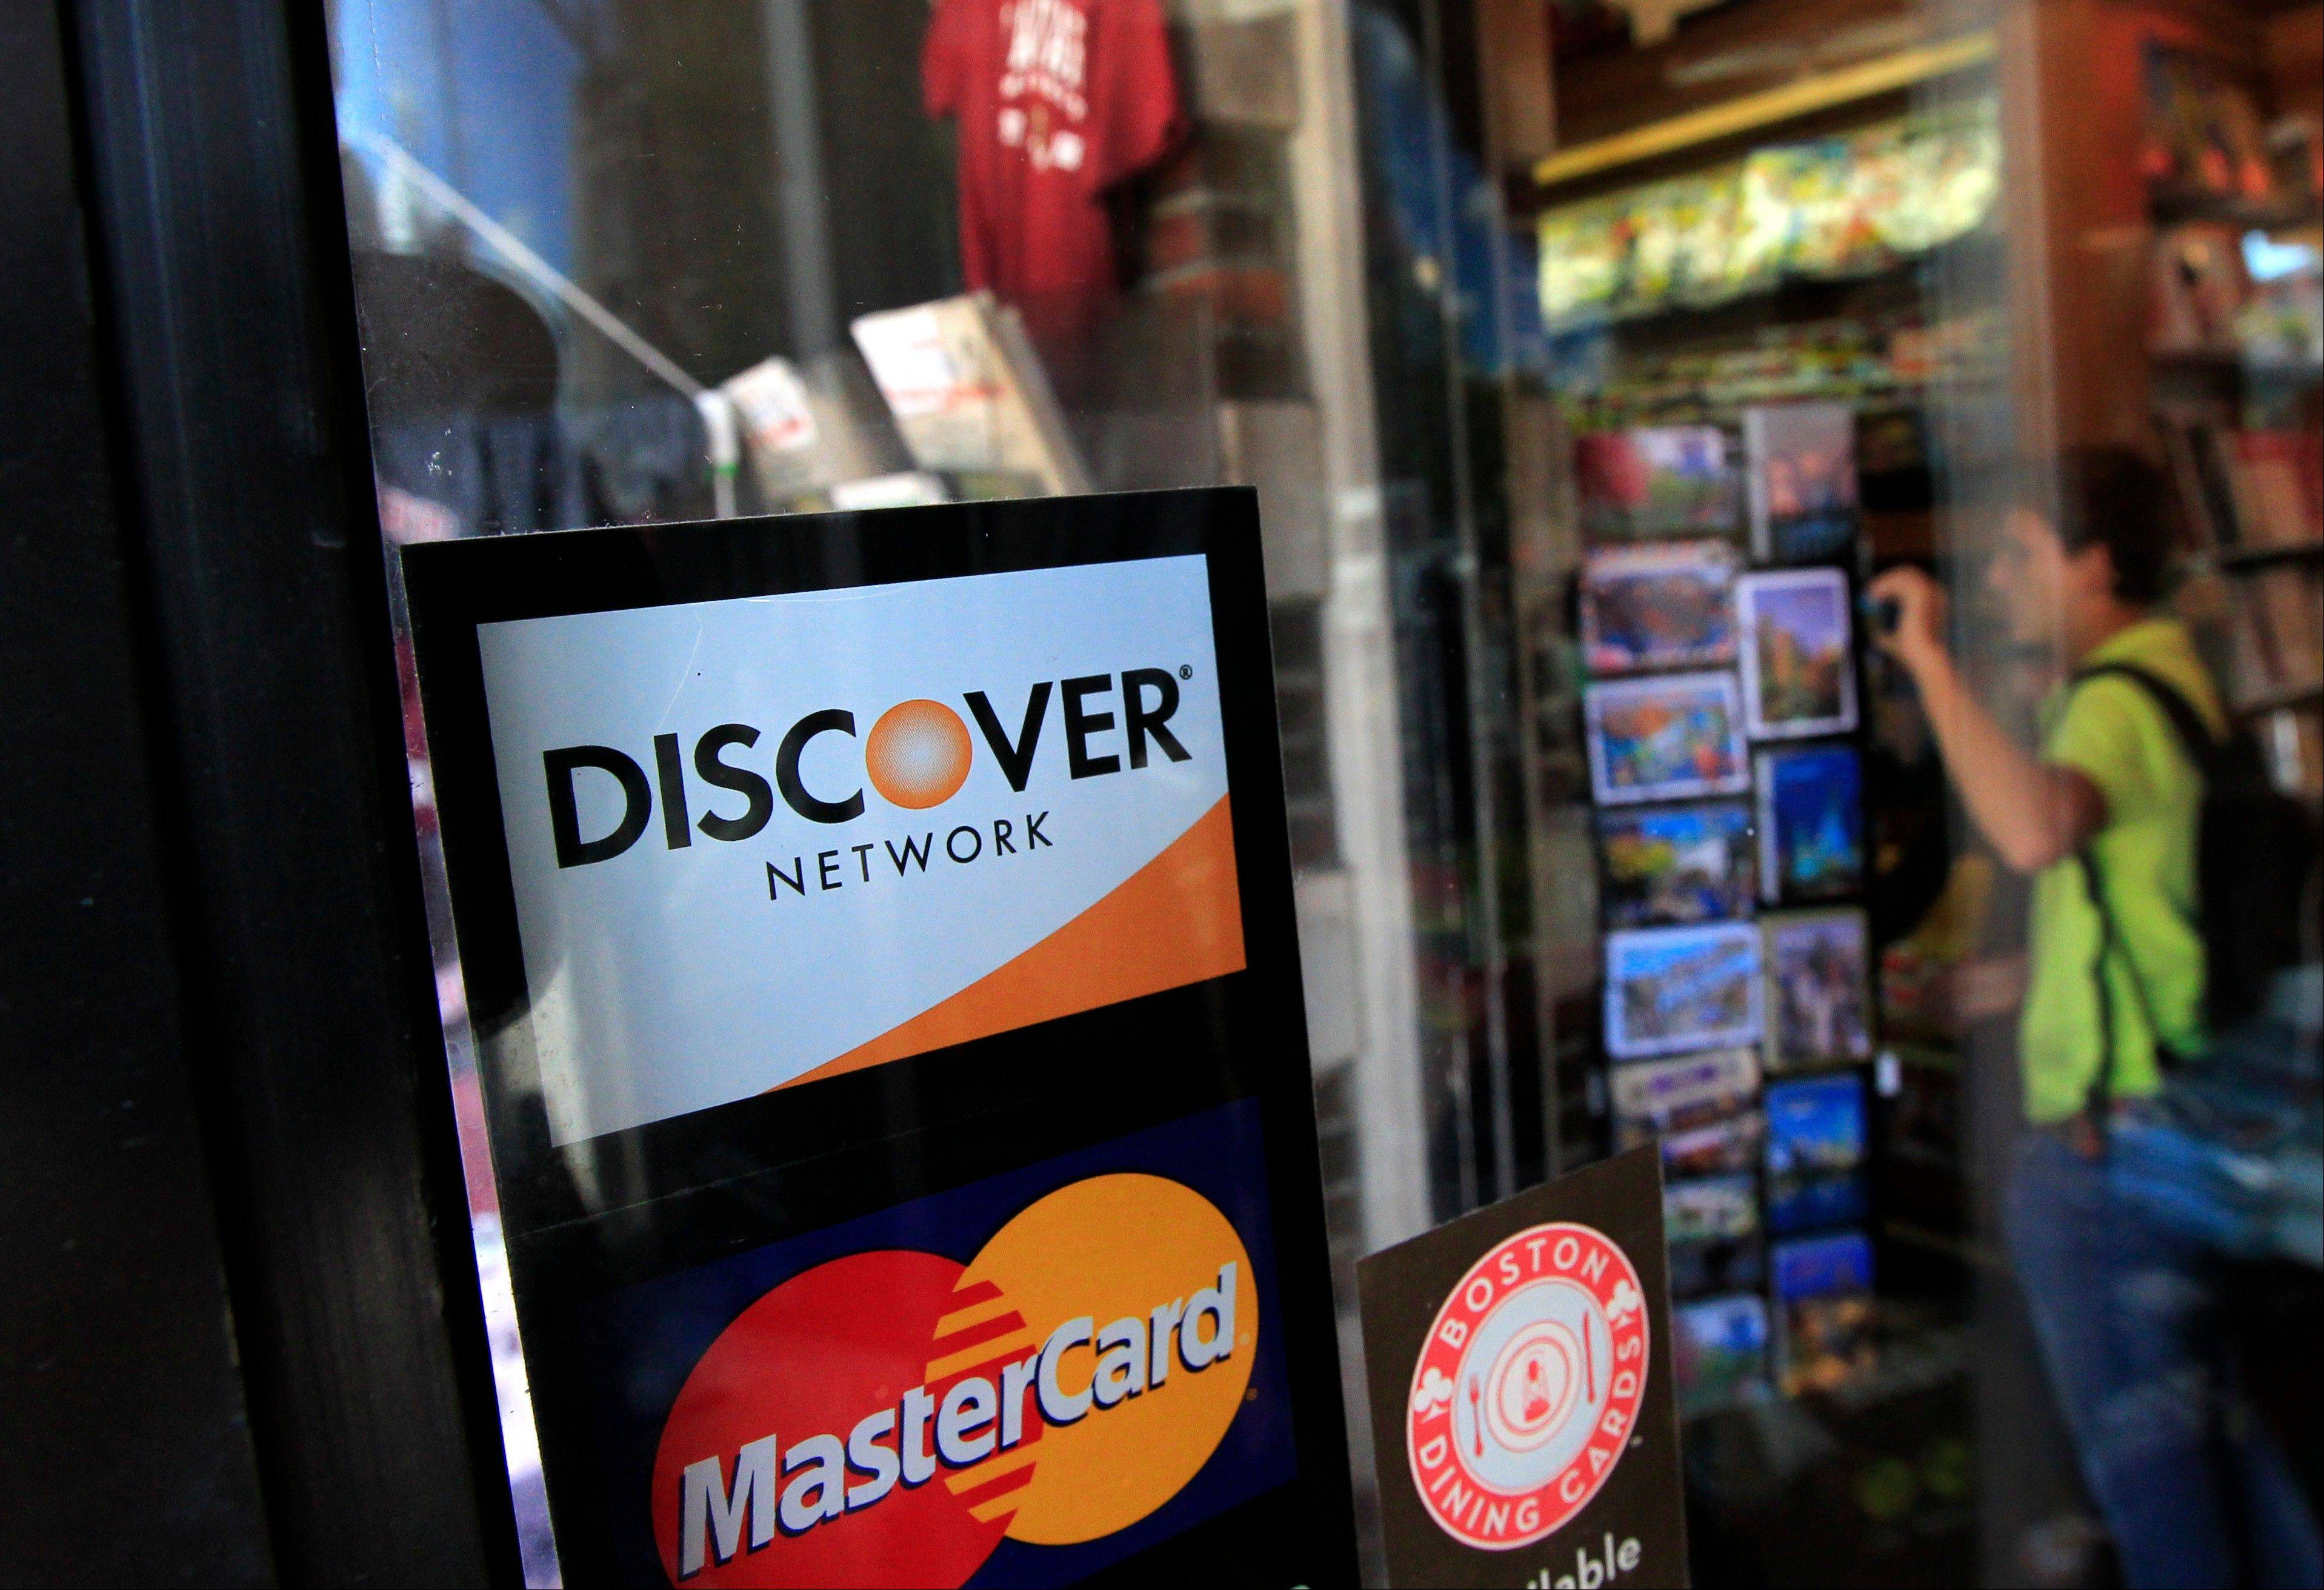 A Discover logo in the window at the entrance of a shop in Cambridge, Mass.